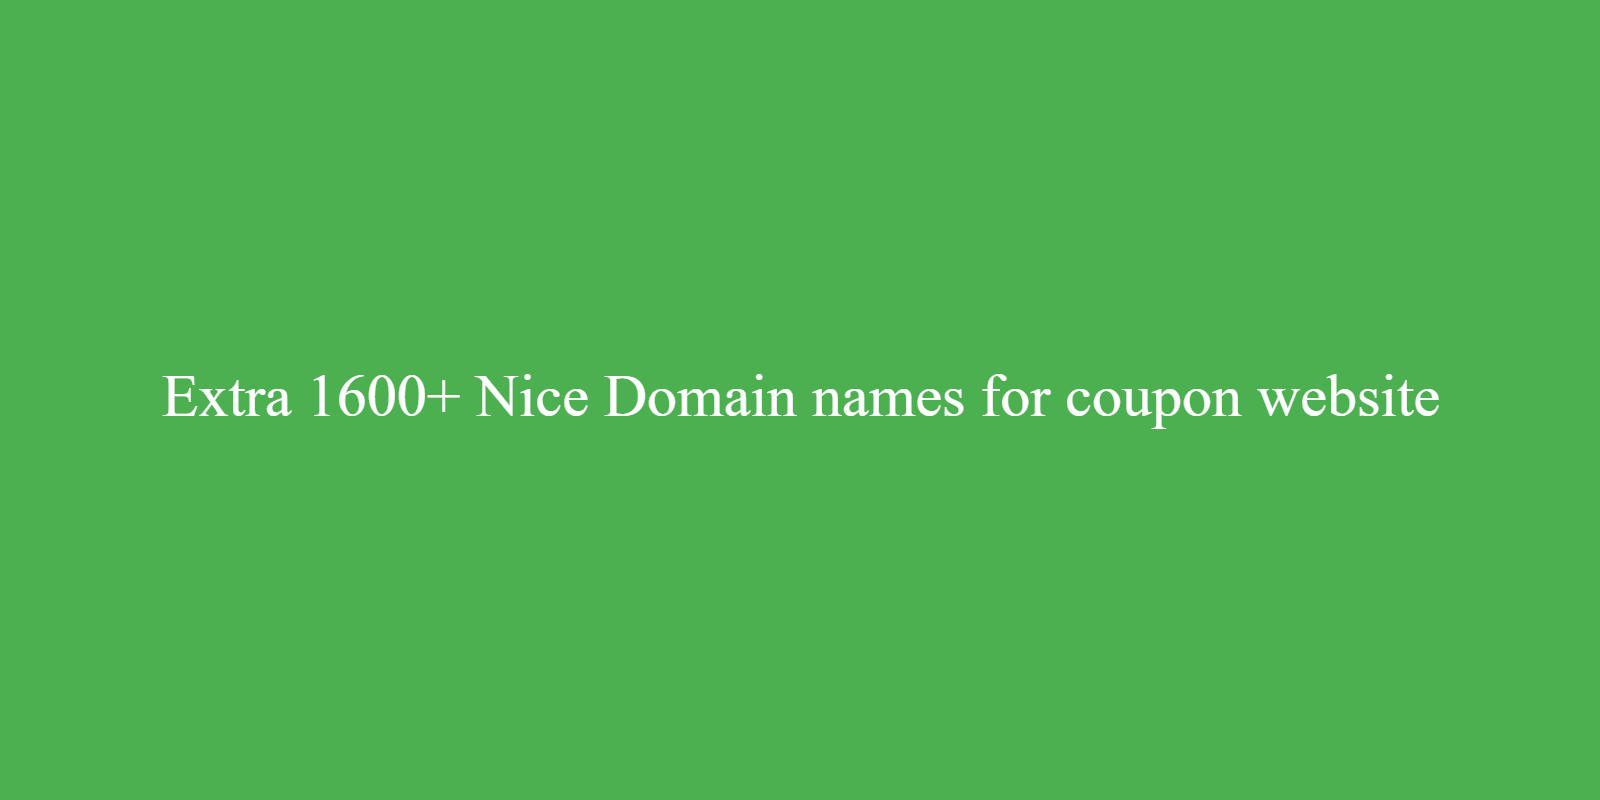 Extra 1600+ Nice Domain names for coupon website